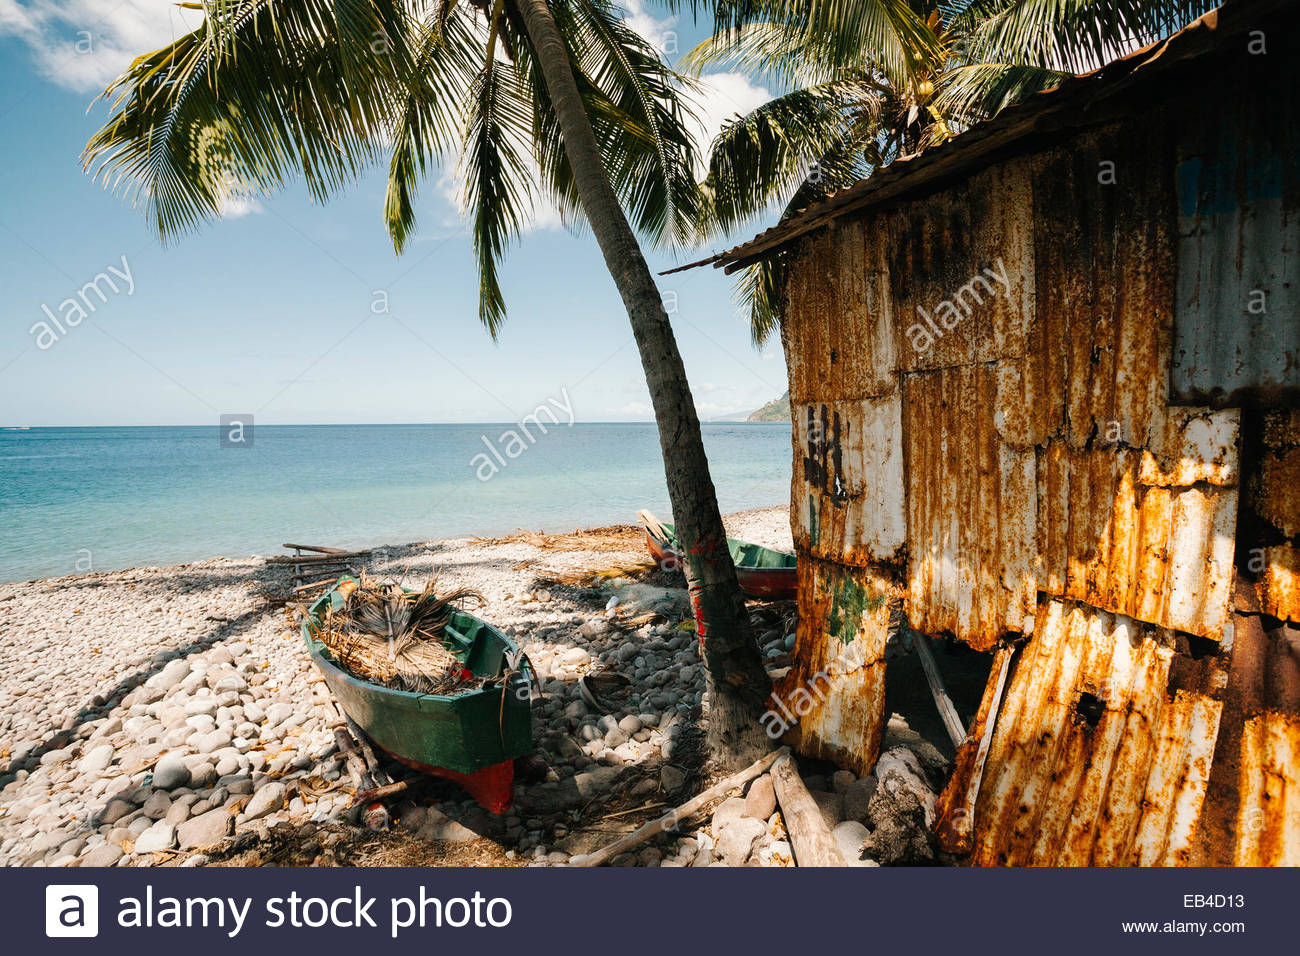 A boat beached next to a building with corrugated iron siding and a palm tree in Scotts Head on Dominica Island, - Stock Image